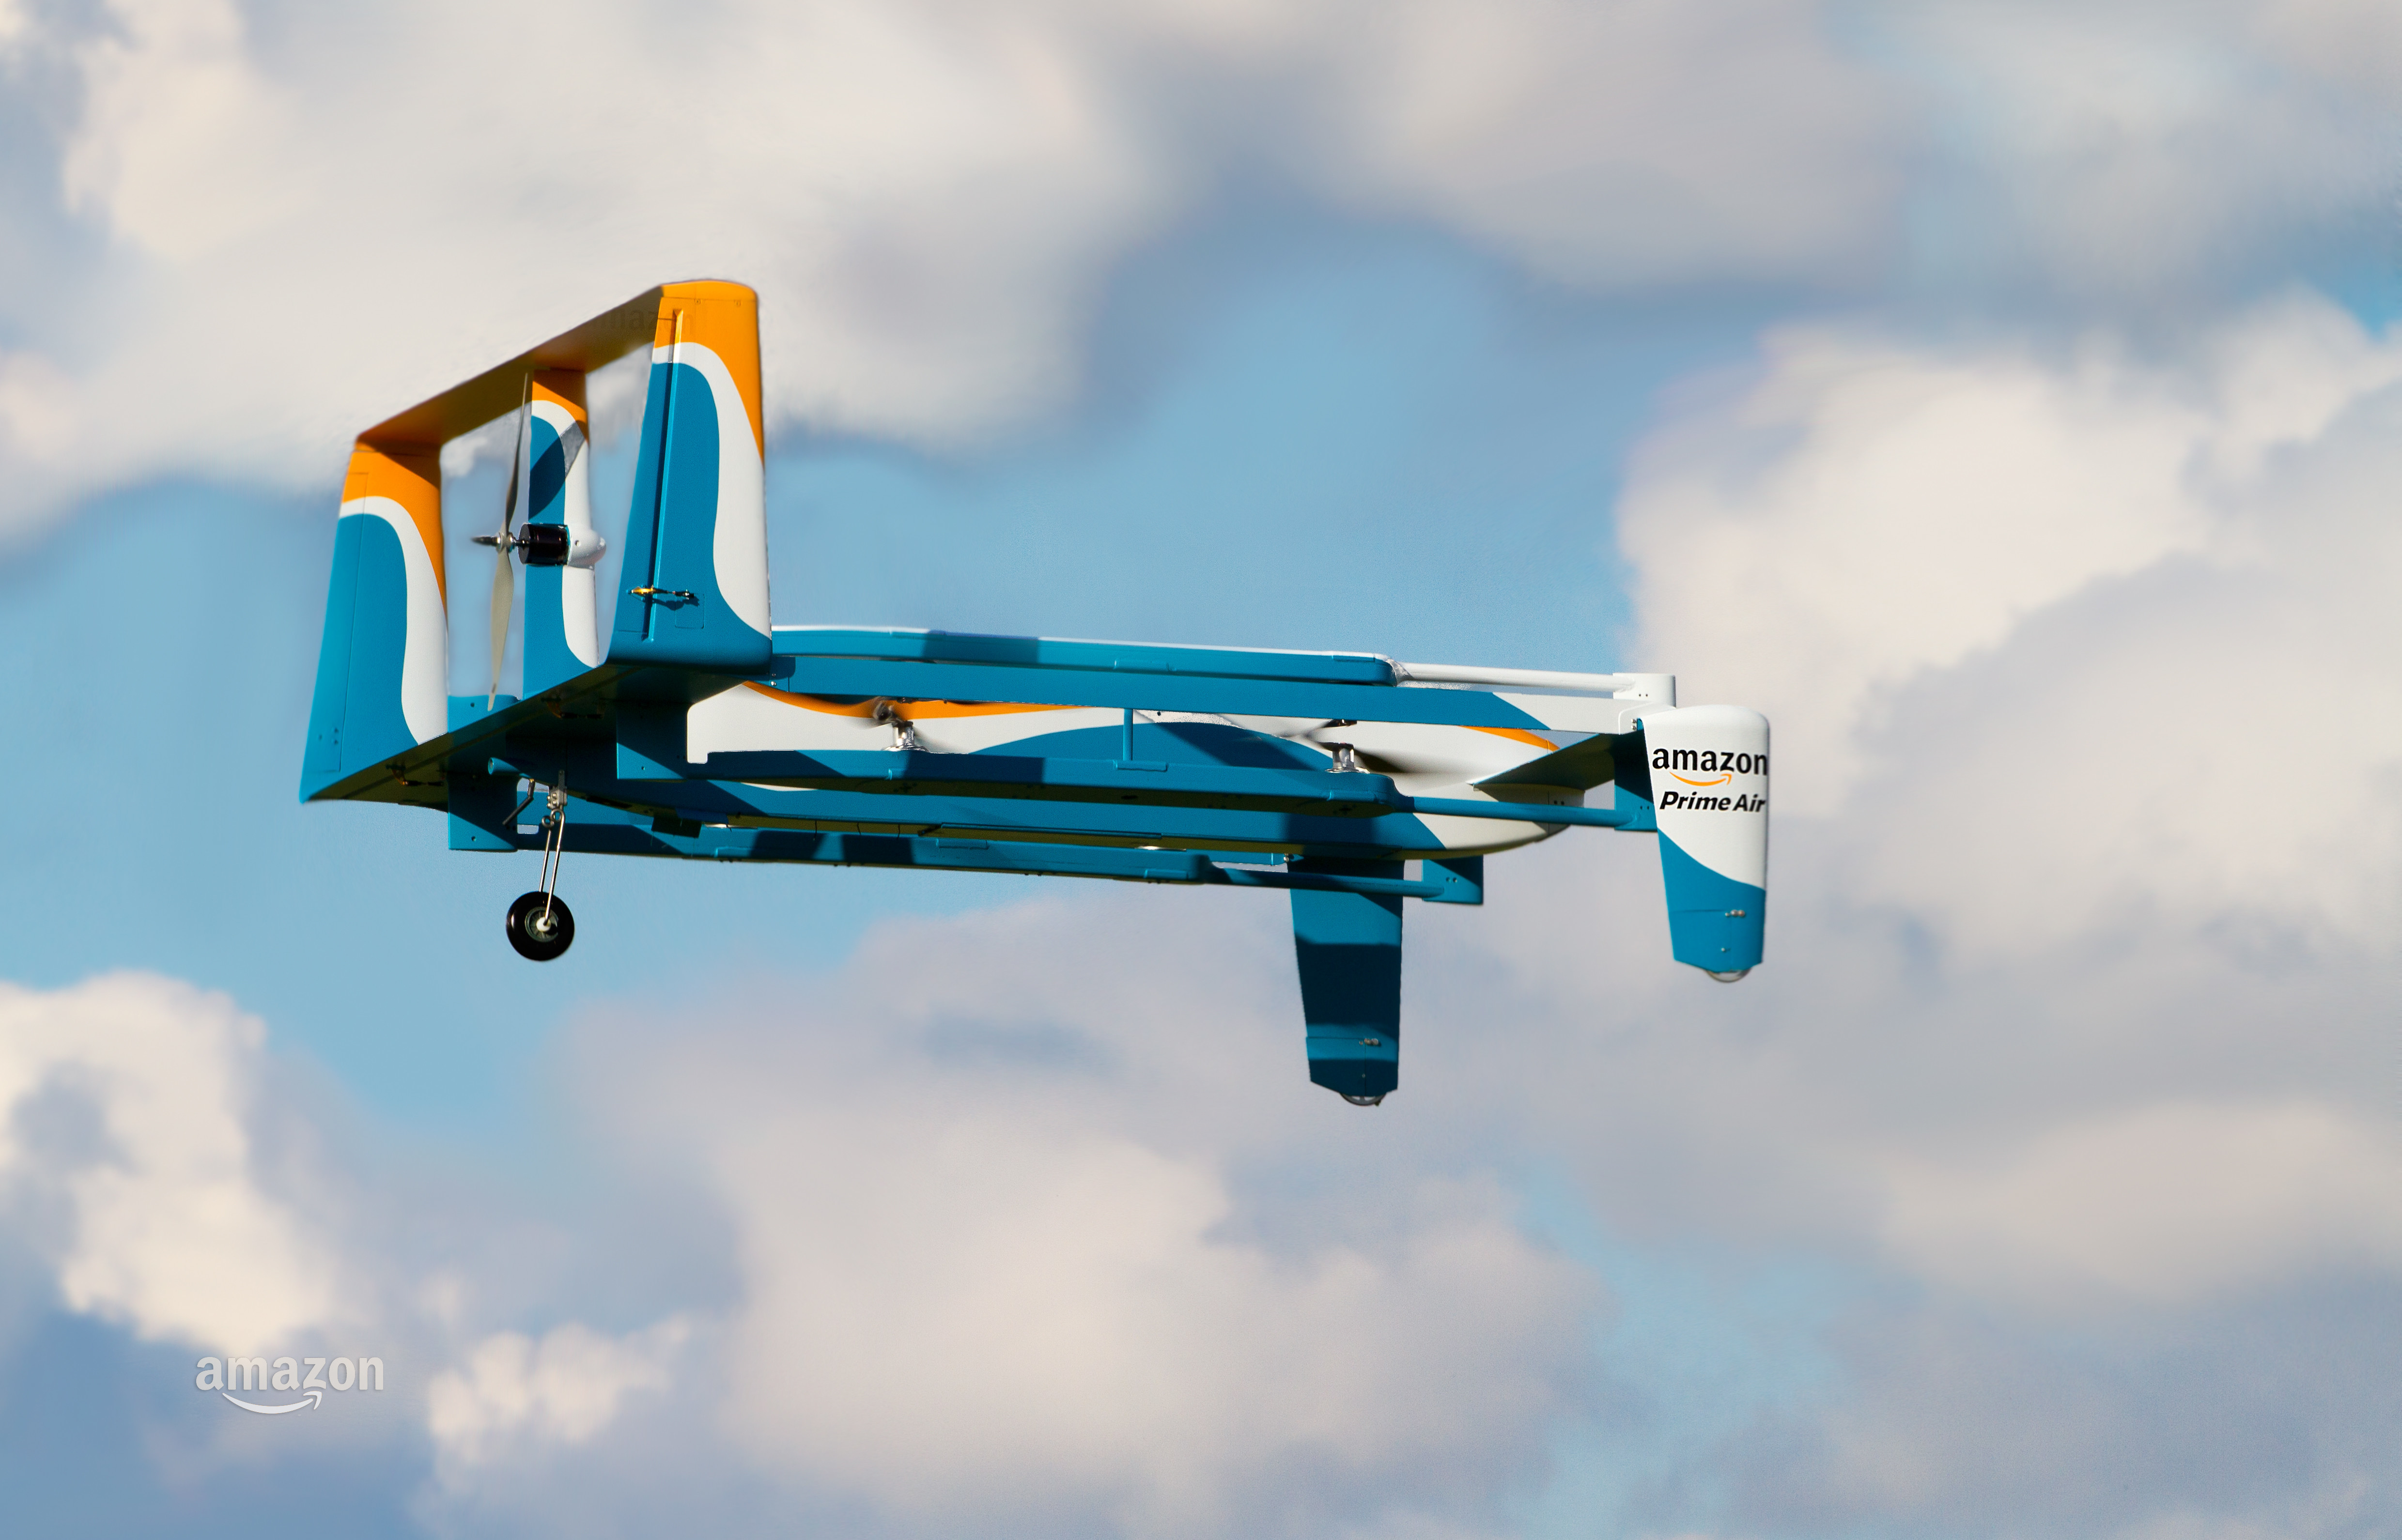 Amazon's New Drone Designed to Self-Destruct in Emergencies